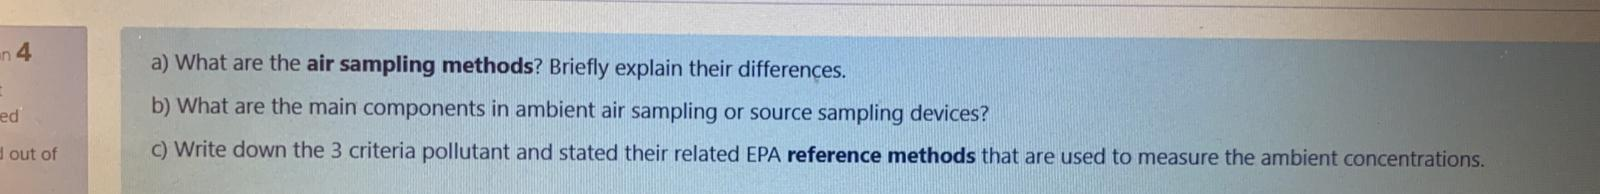 an 4 ed a) What are the air sampling methods? Briefly explain their differences. b) What are the main components in ambient a